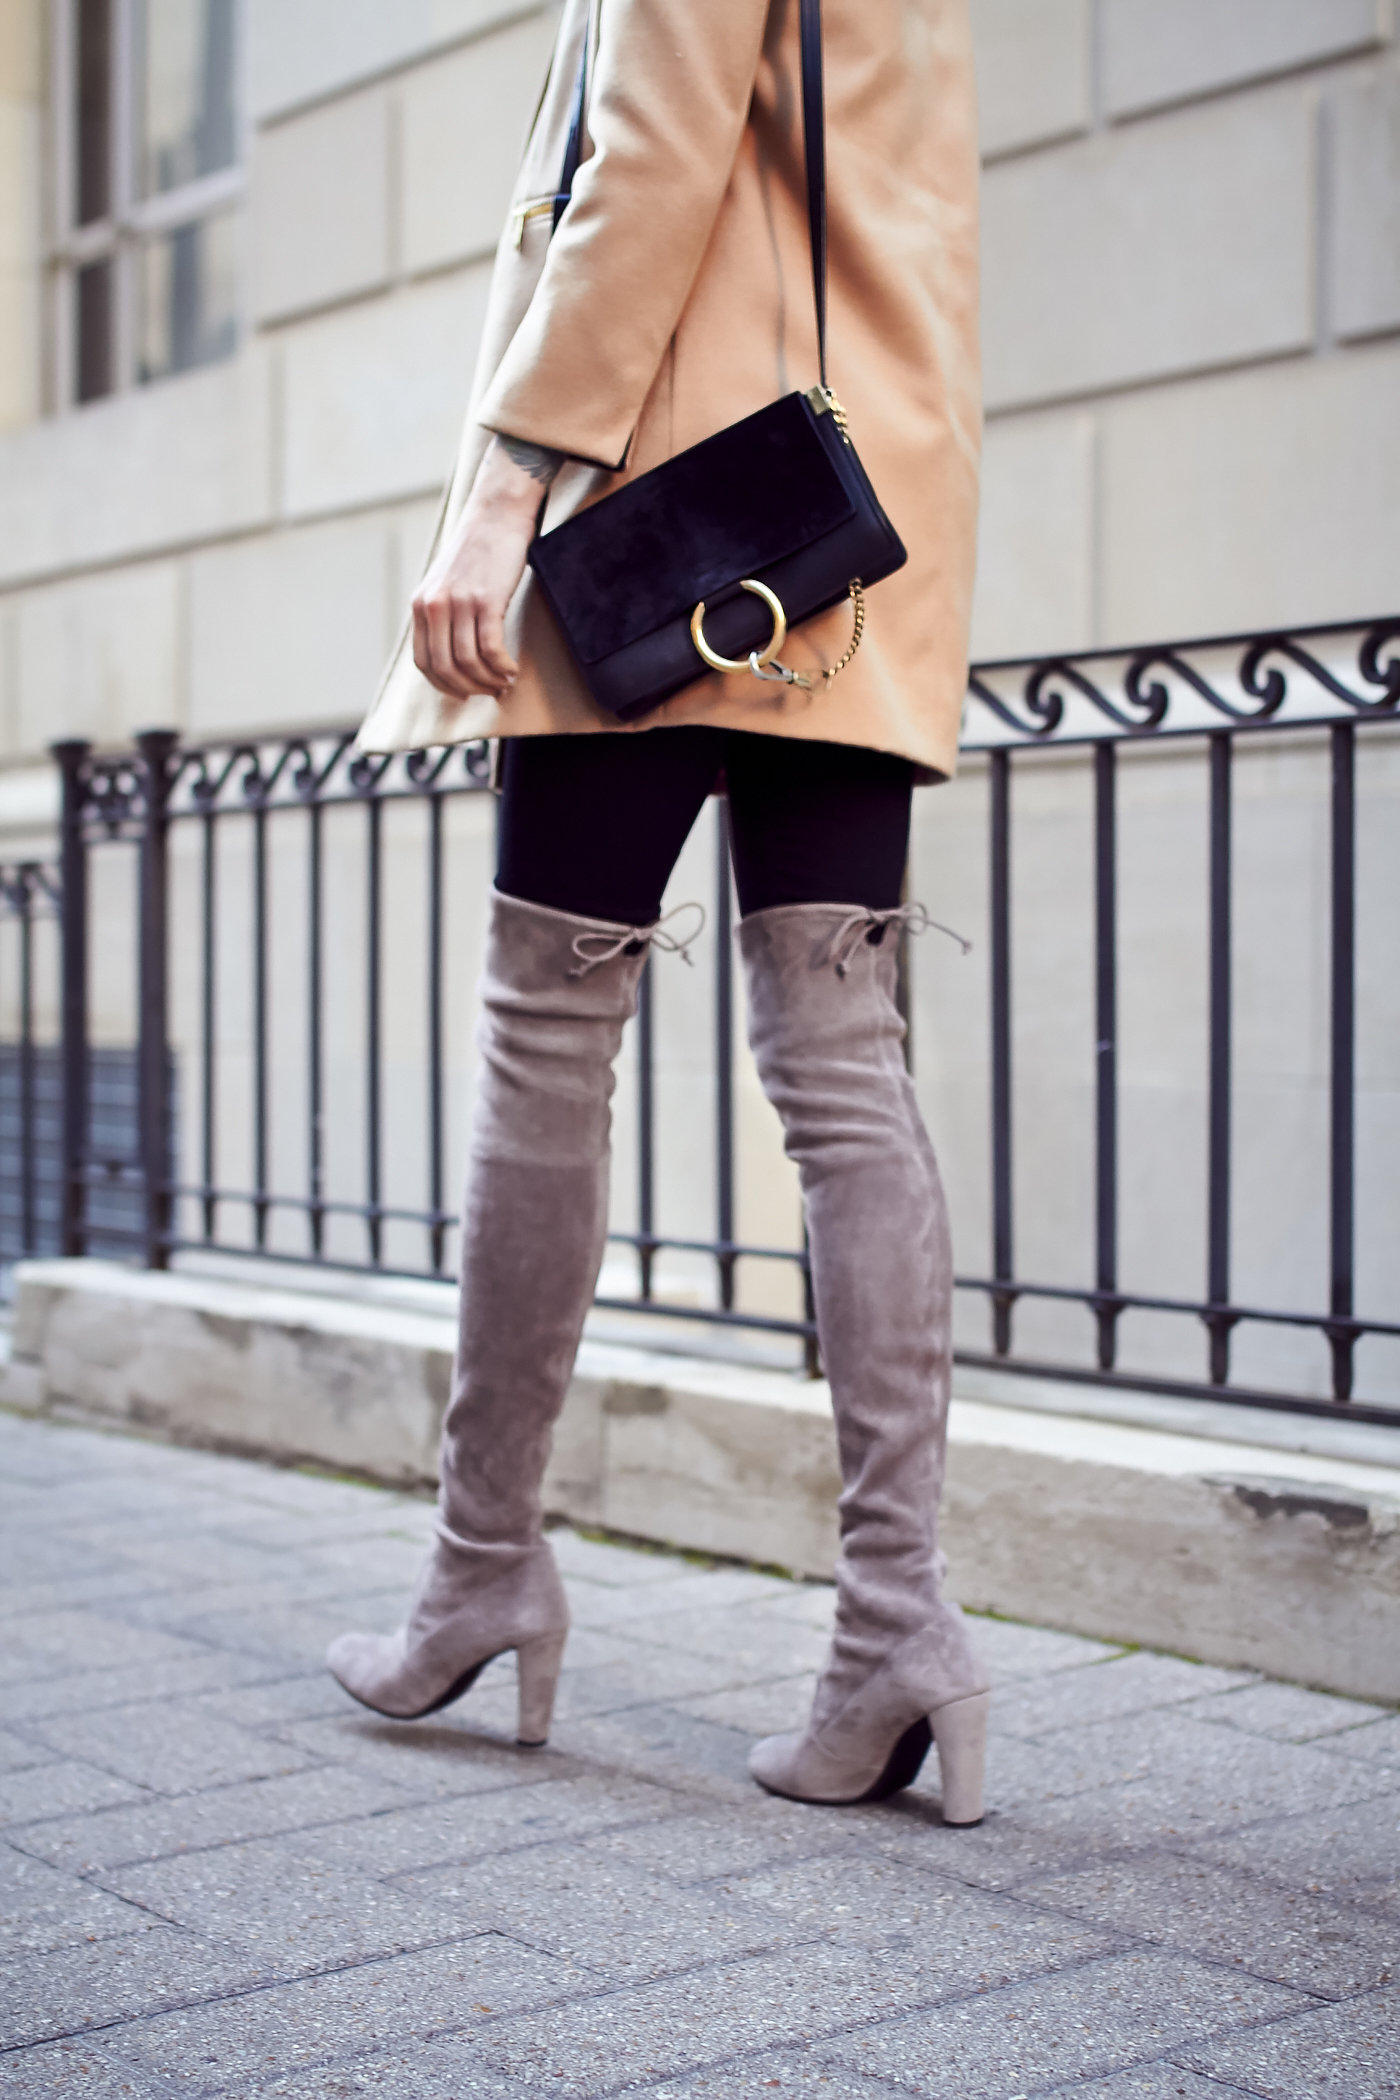 bcf3a12cea0 HOW TO WEAR OVER THE KNEE BOOTS